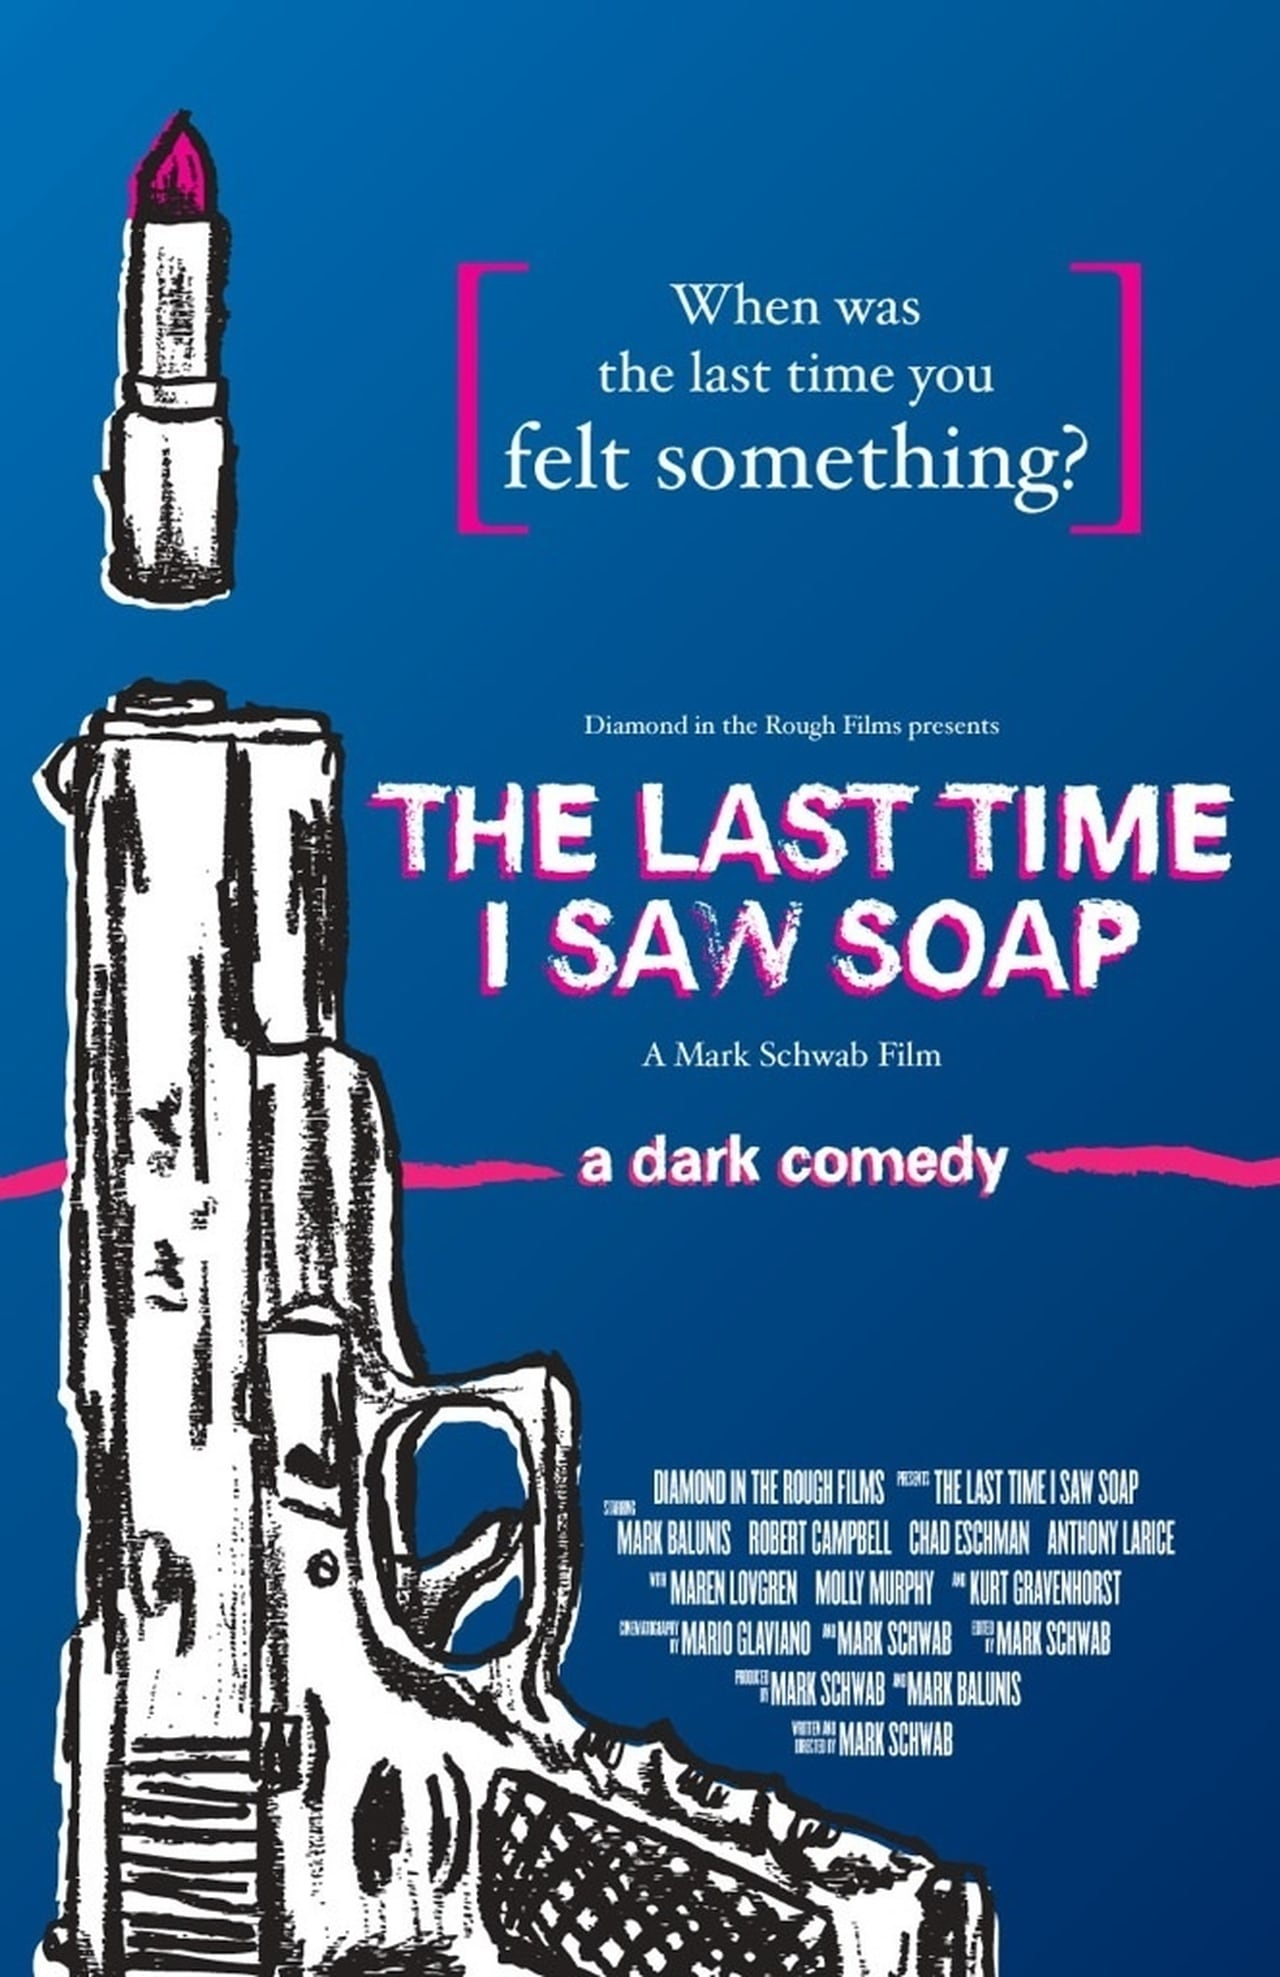 The Last Time I Saw Soap